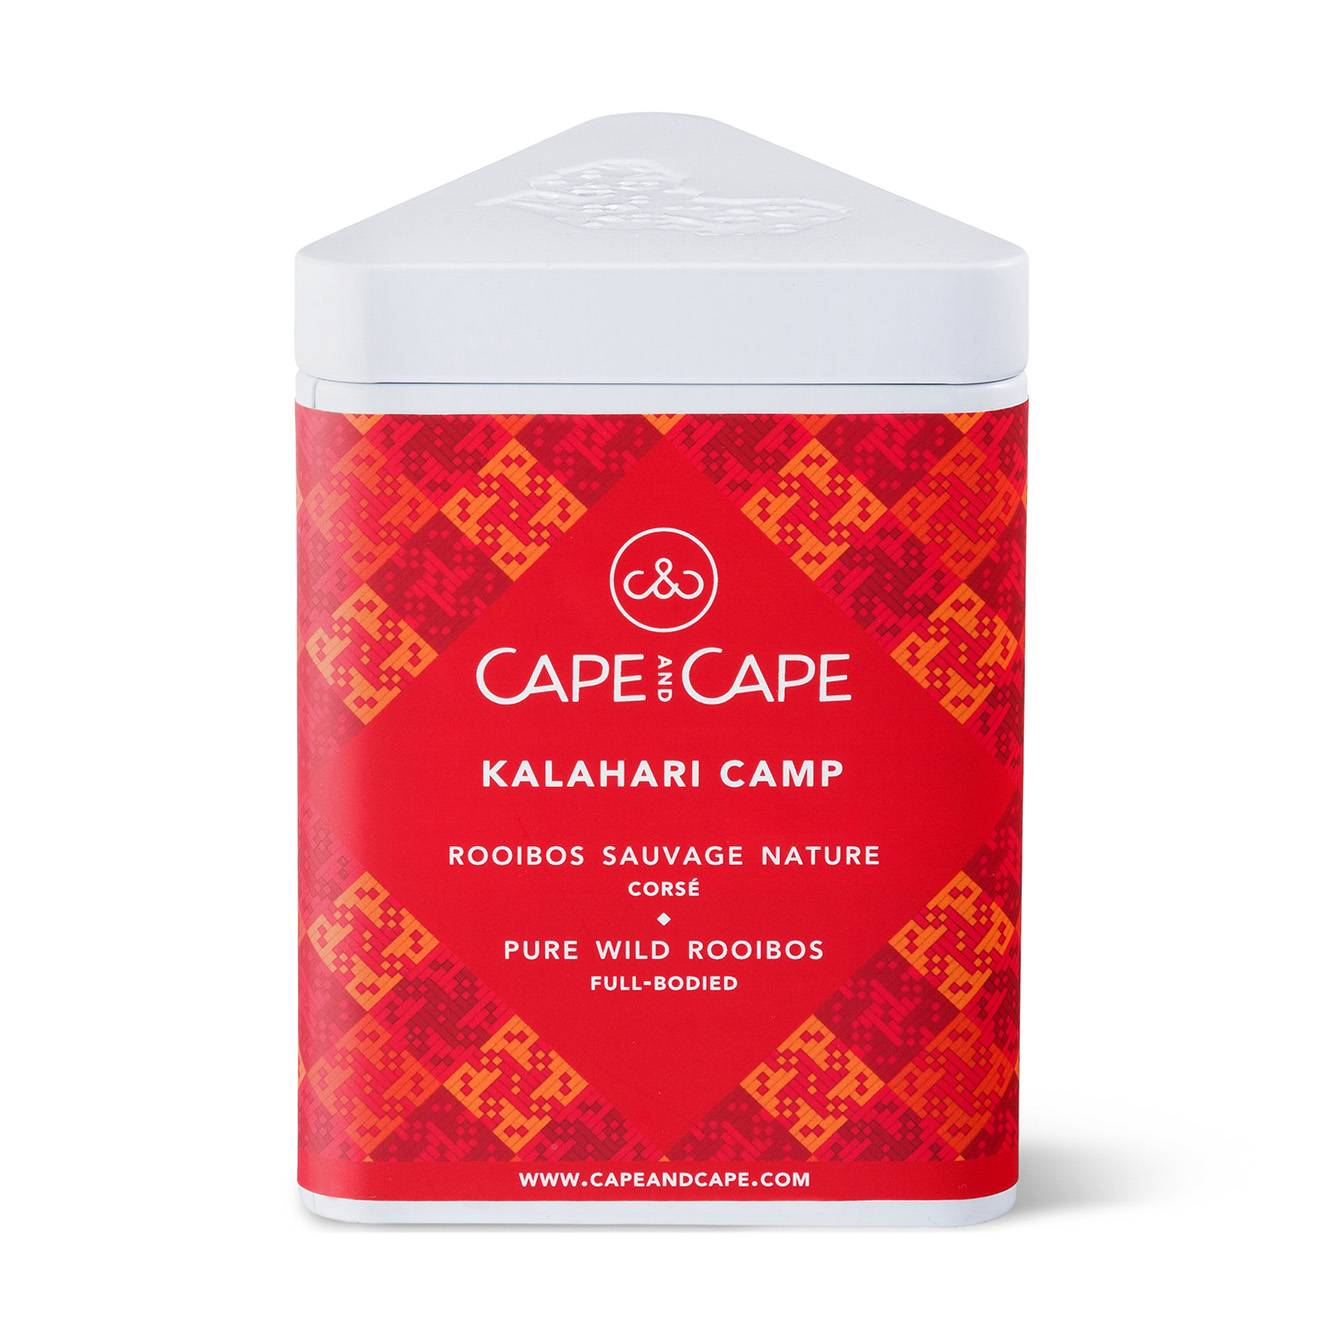 Cape & Cape - Rooibos nature Kahalari Camp - 100 gr